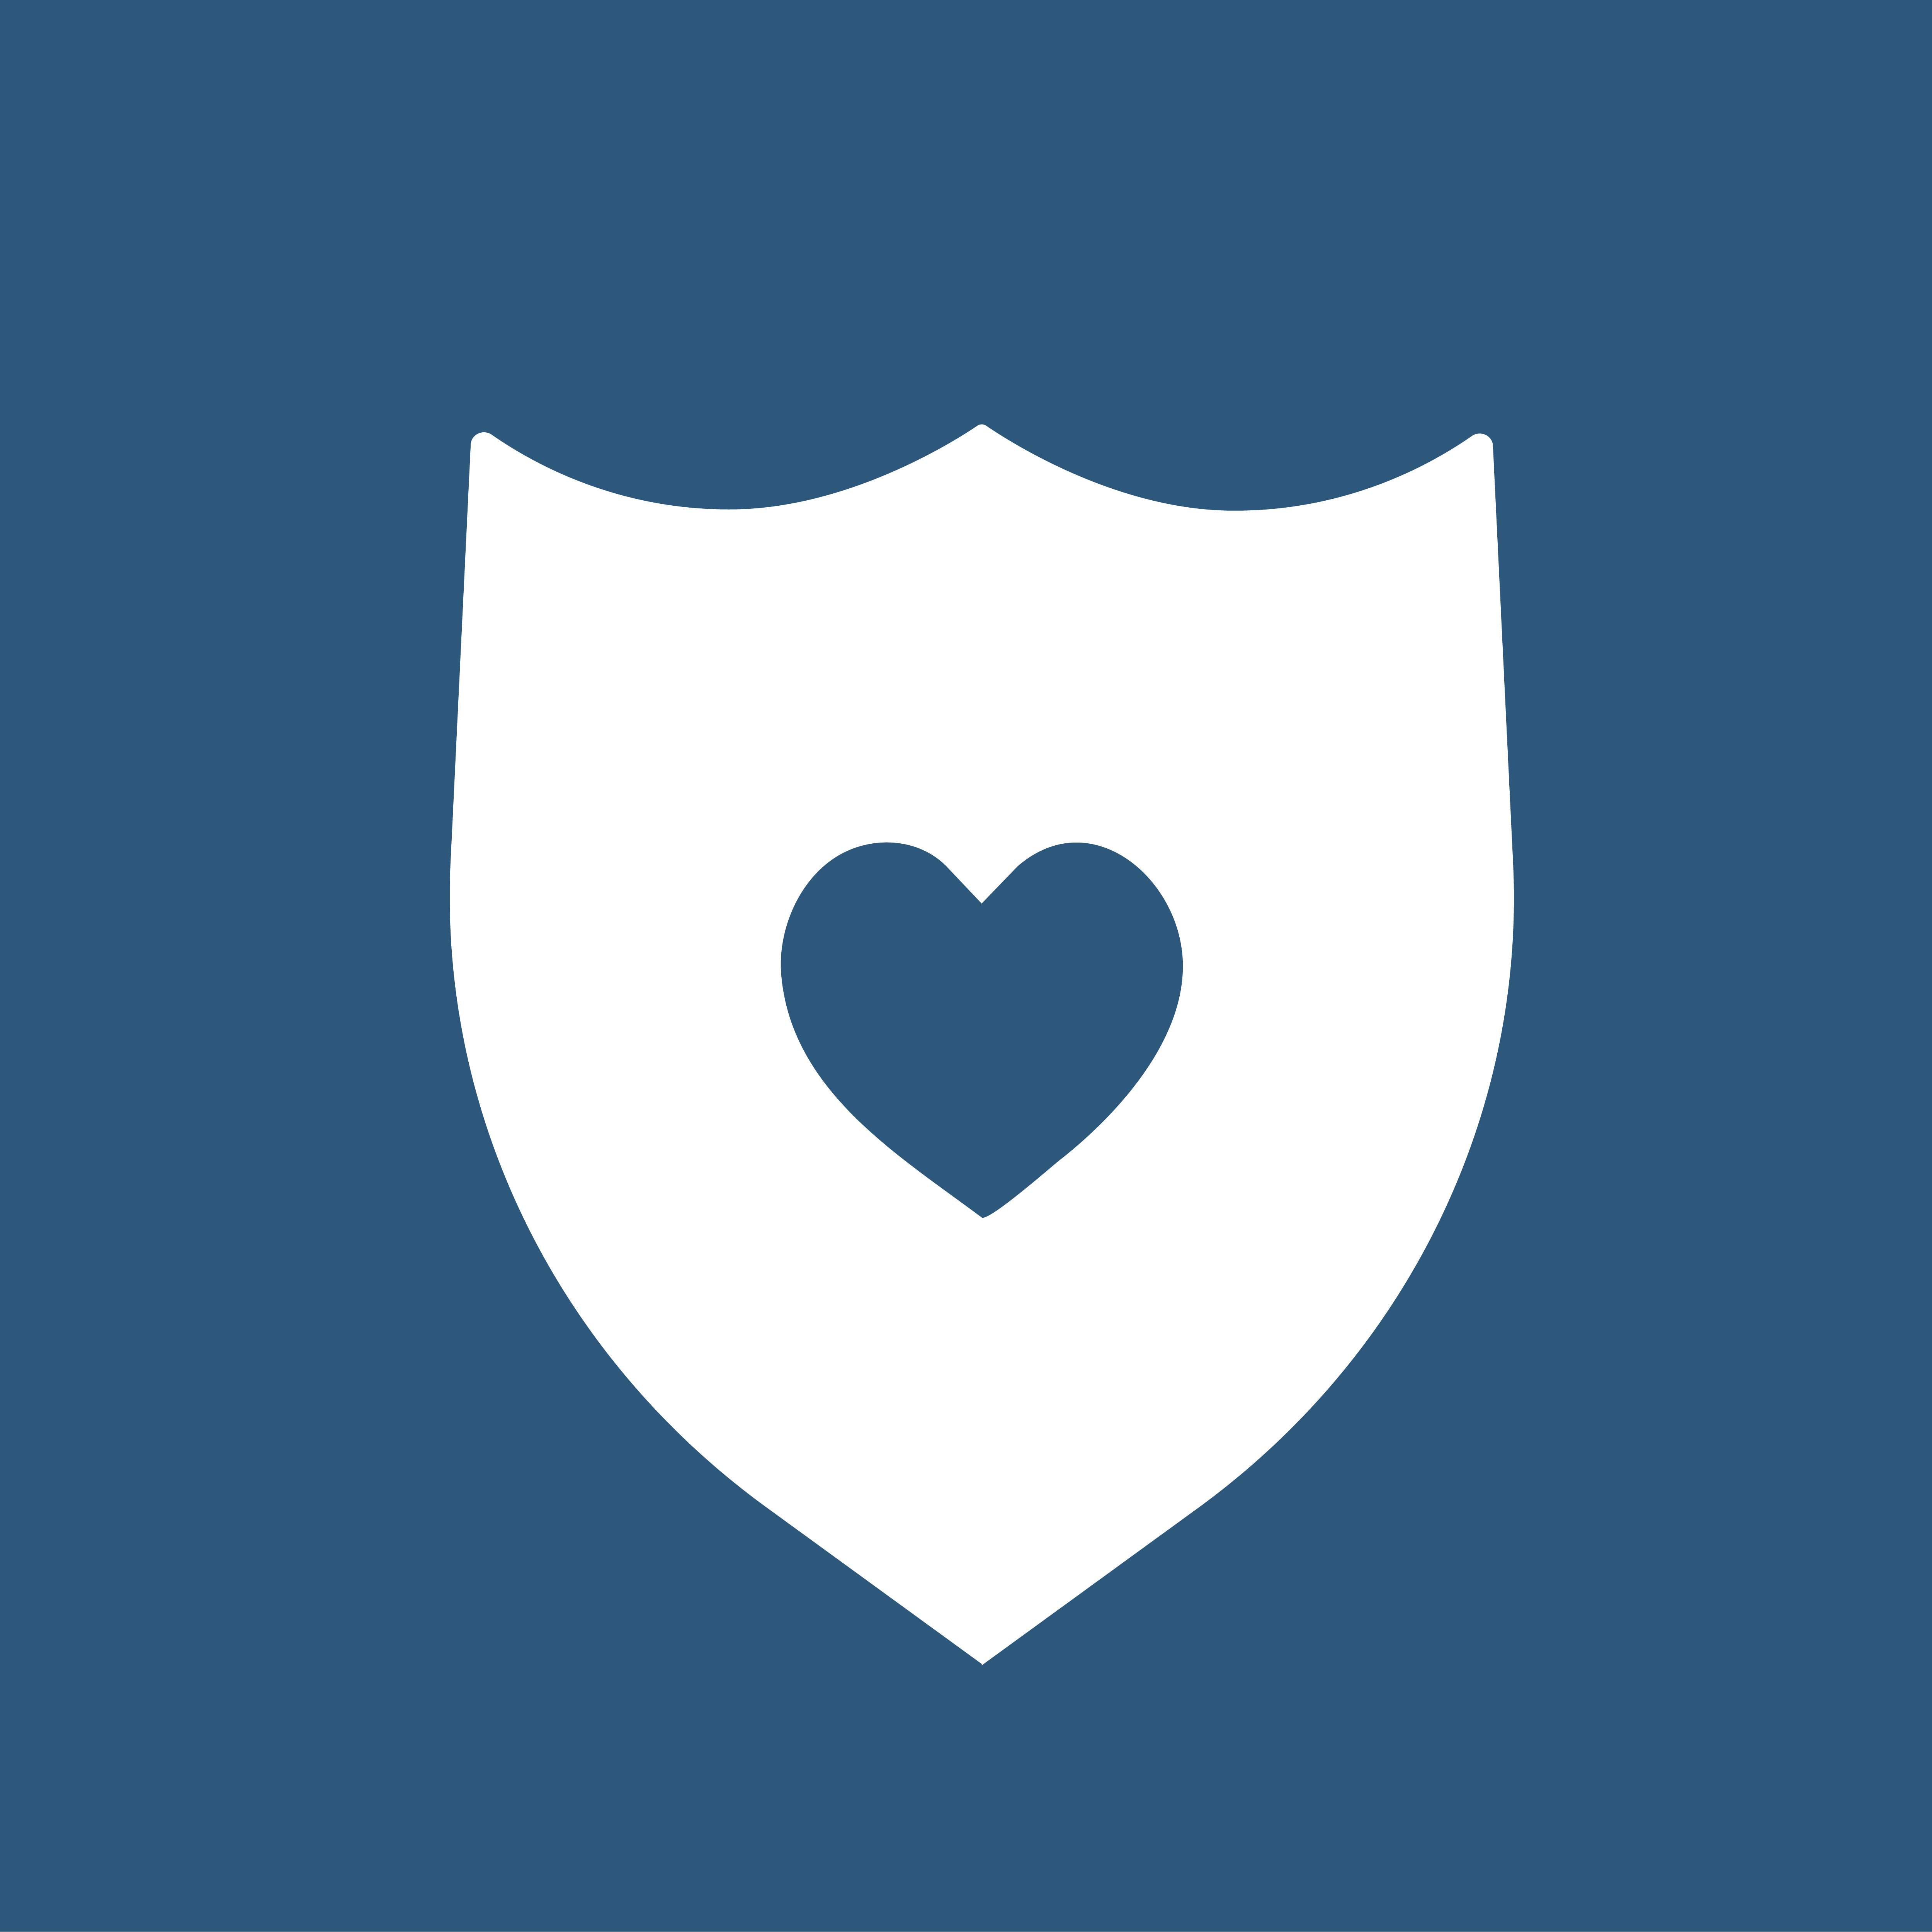 Health insurance shield icon illustration - Download Free ...